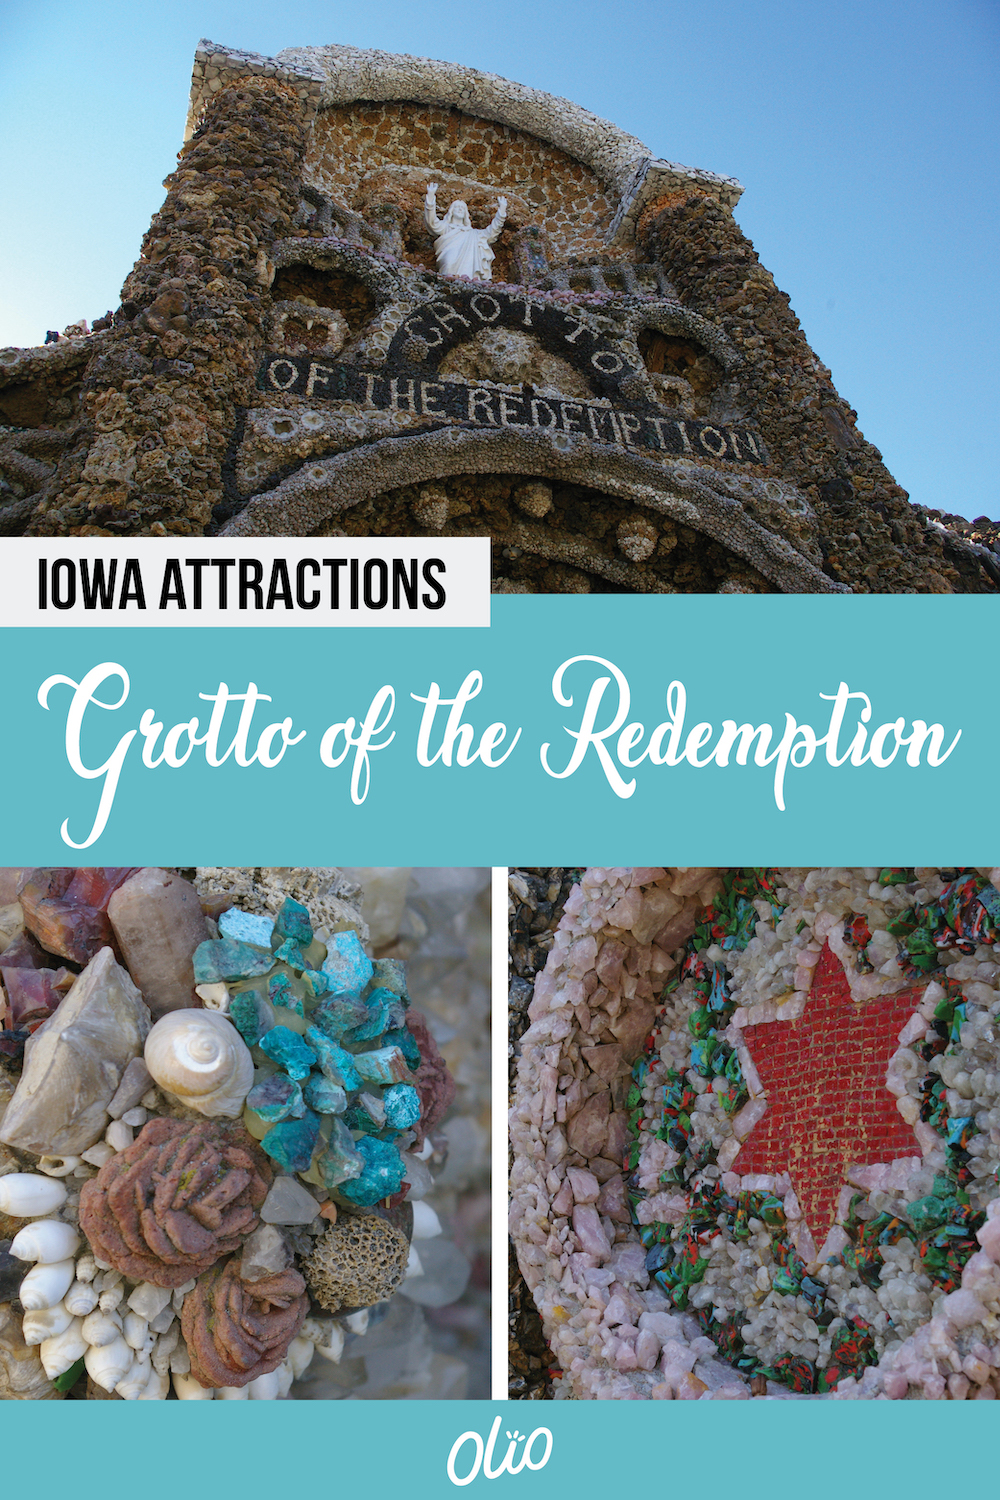 Located in West Bend, Iowa, the Grotto of the Redemption has been referred to as the eighth wonder of the world. This unique attraction is constructed with an estimated $4.3 million in stones and precious gems. Construction on the grotto began in 1912 and today it is listed on the National Register of Historic Places, attracting more than 100,000 visitors every year. #Iowa #RoadsideAttractions